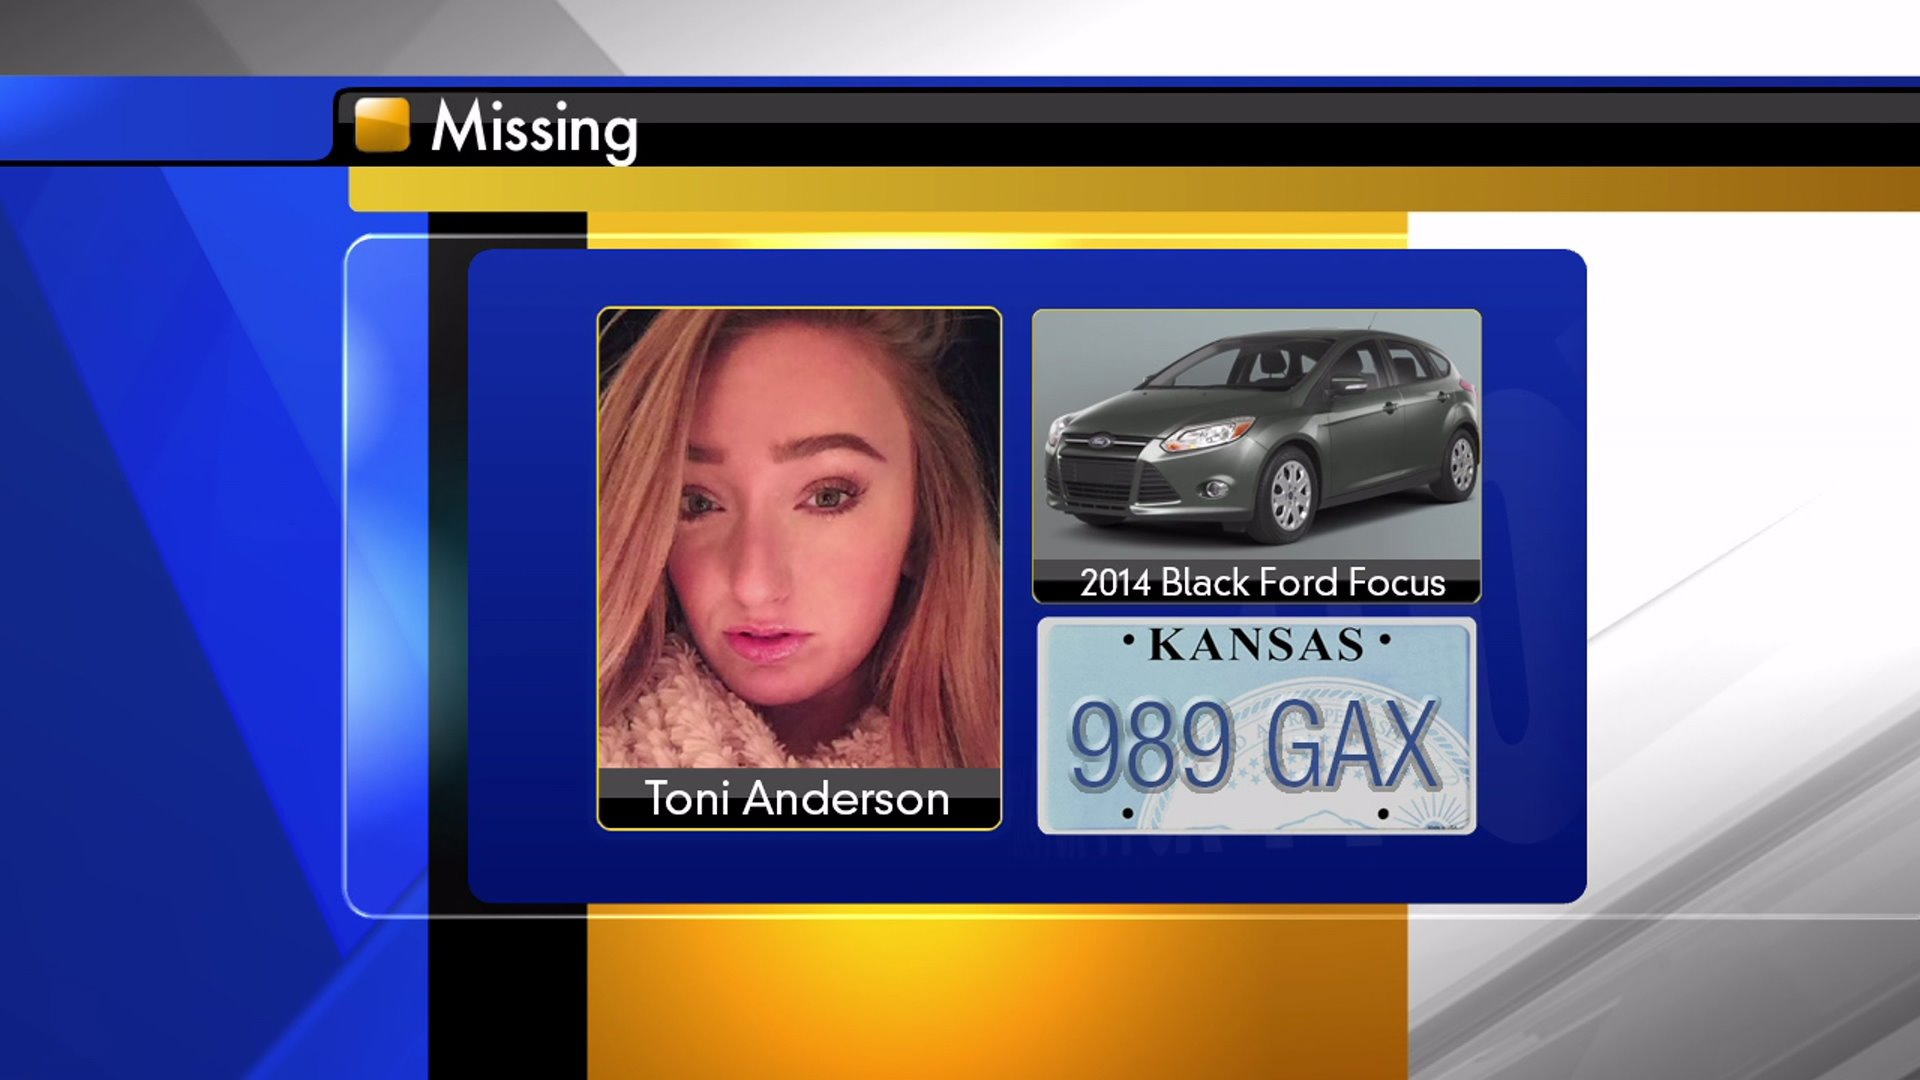 Police are searching for Toni Anderson, 20, and her 2014 black Ford Focus.